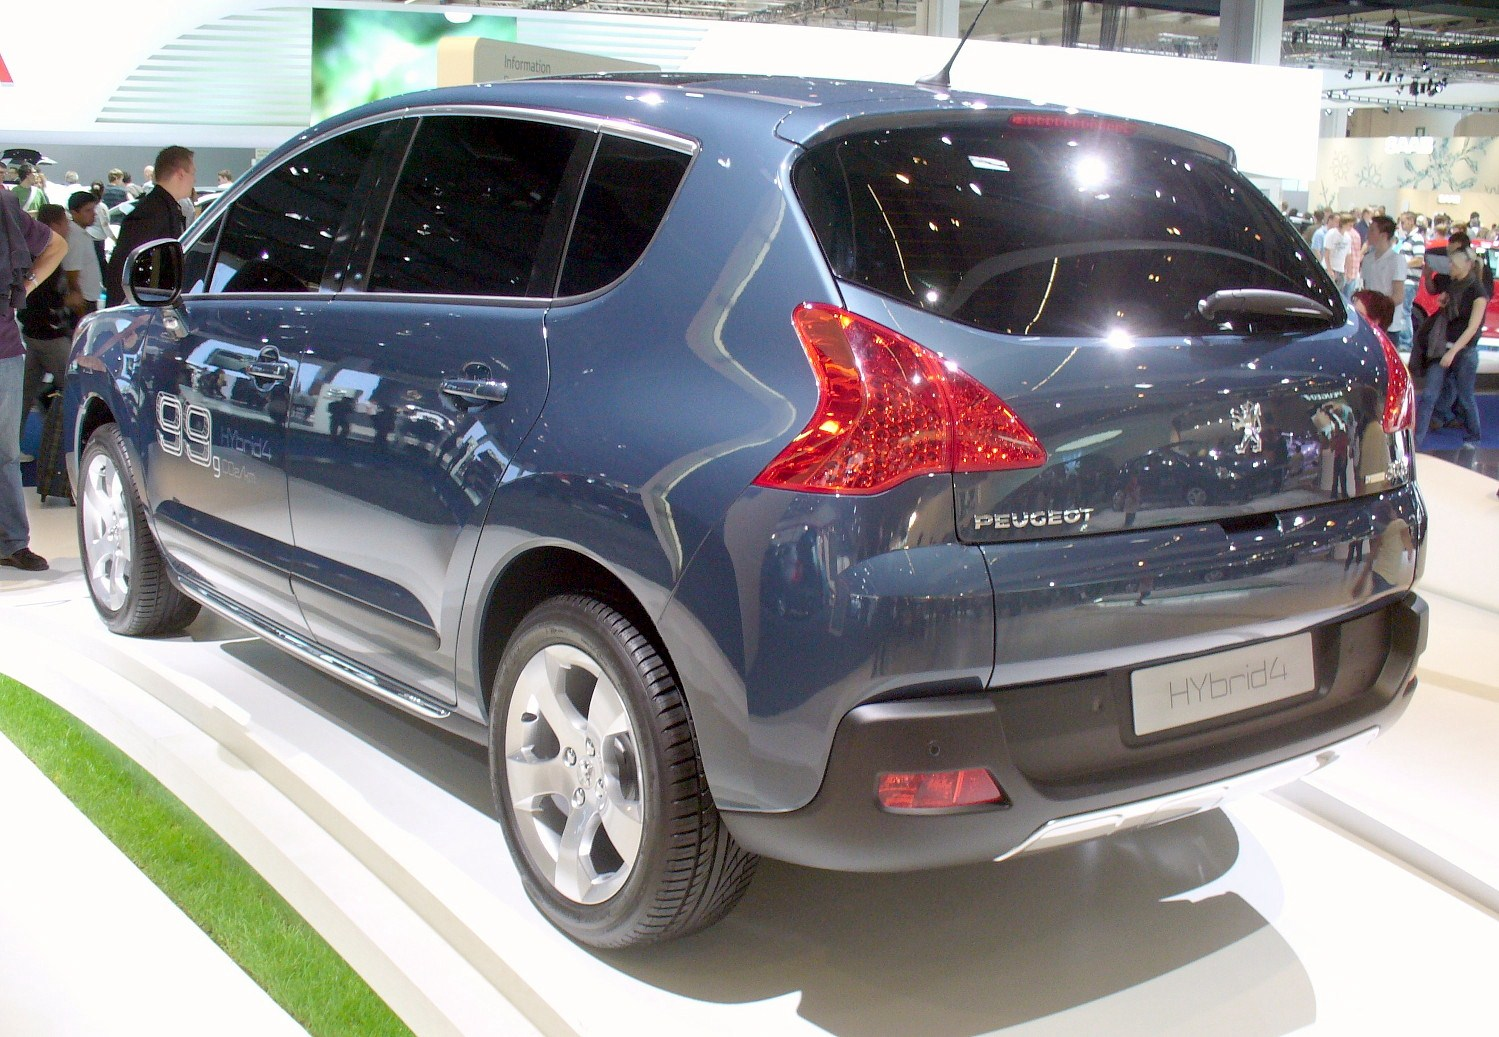 http://upload.wikimedia.org/wikipedia/commons/8/85/Peugeot_3008_HYbrid4_Heck.JPG